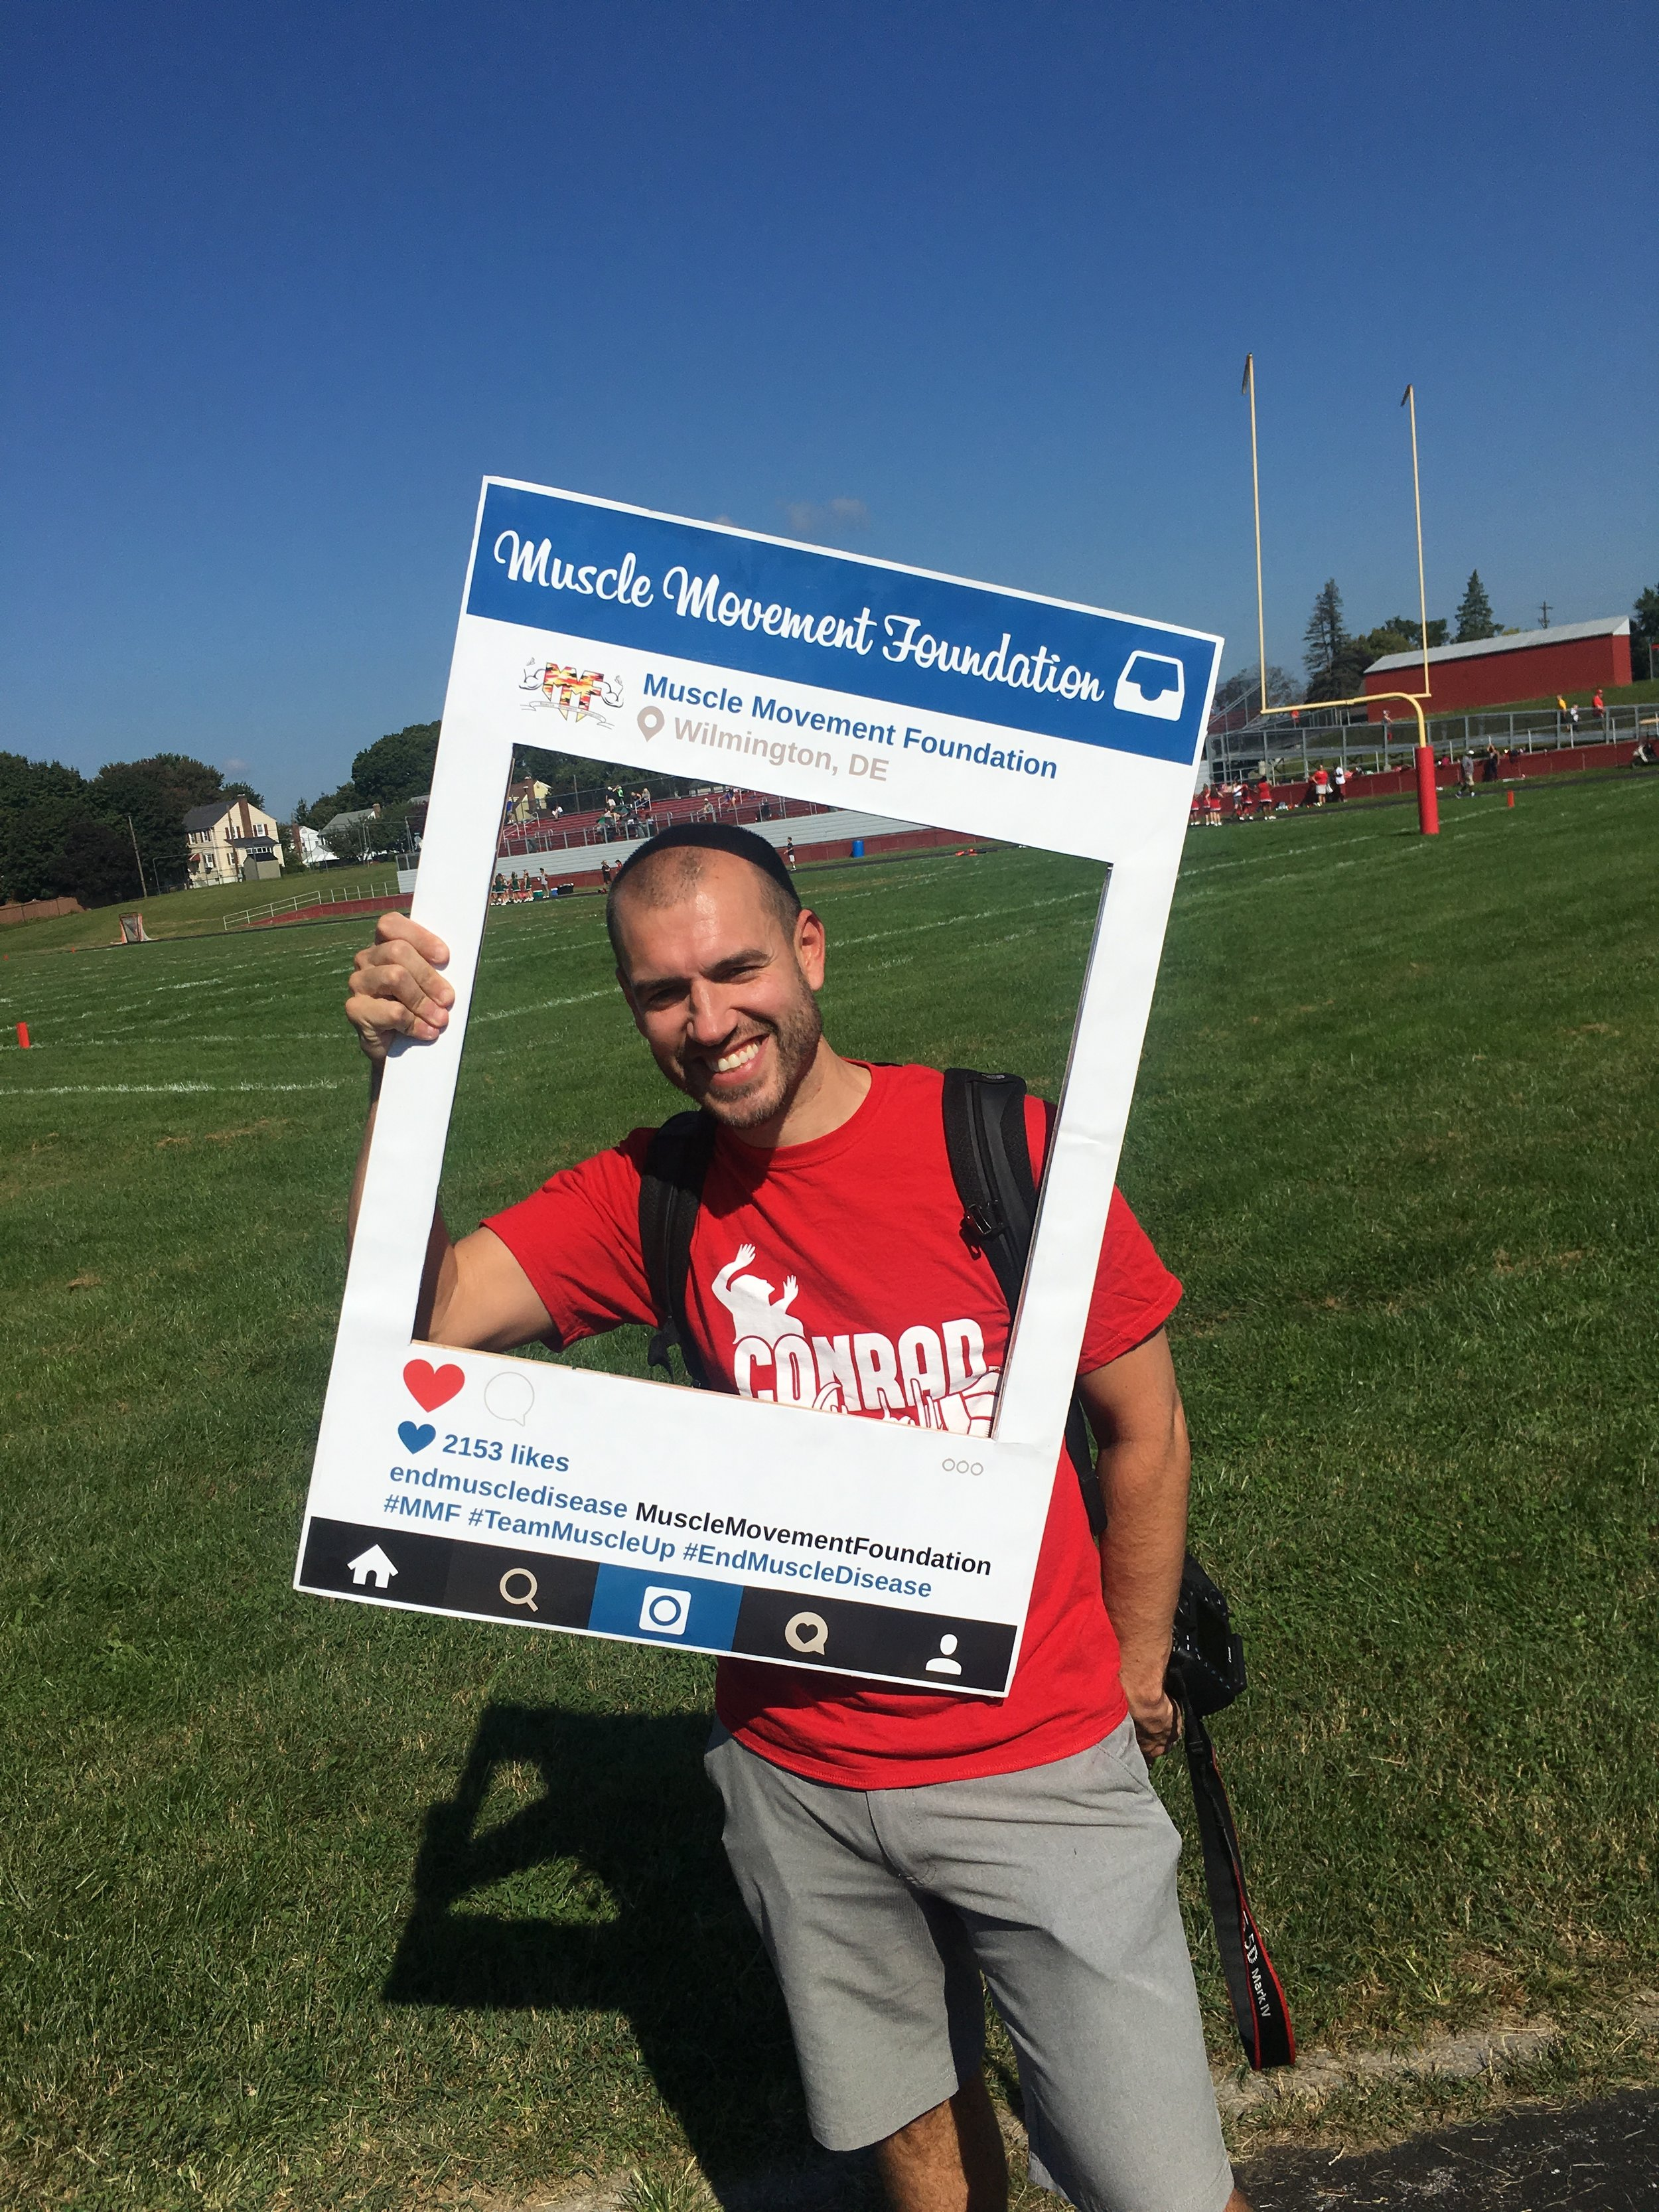 Mr. Rob Naylor poses with the Muscle Movement Foundation Instagram frame!